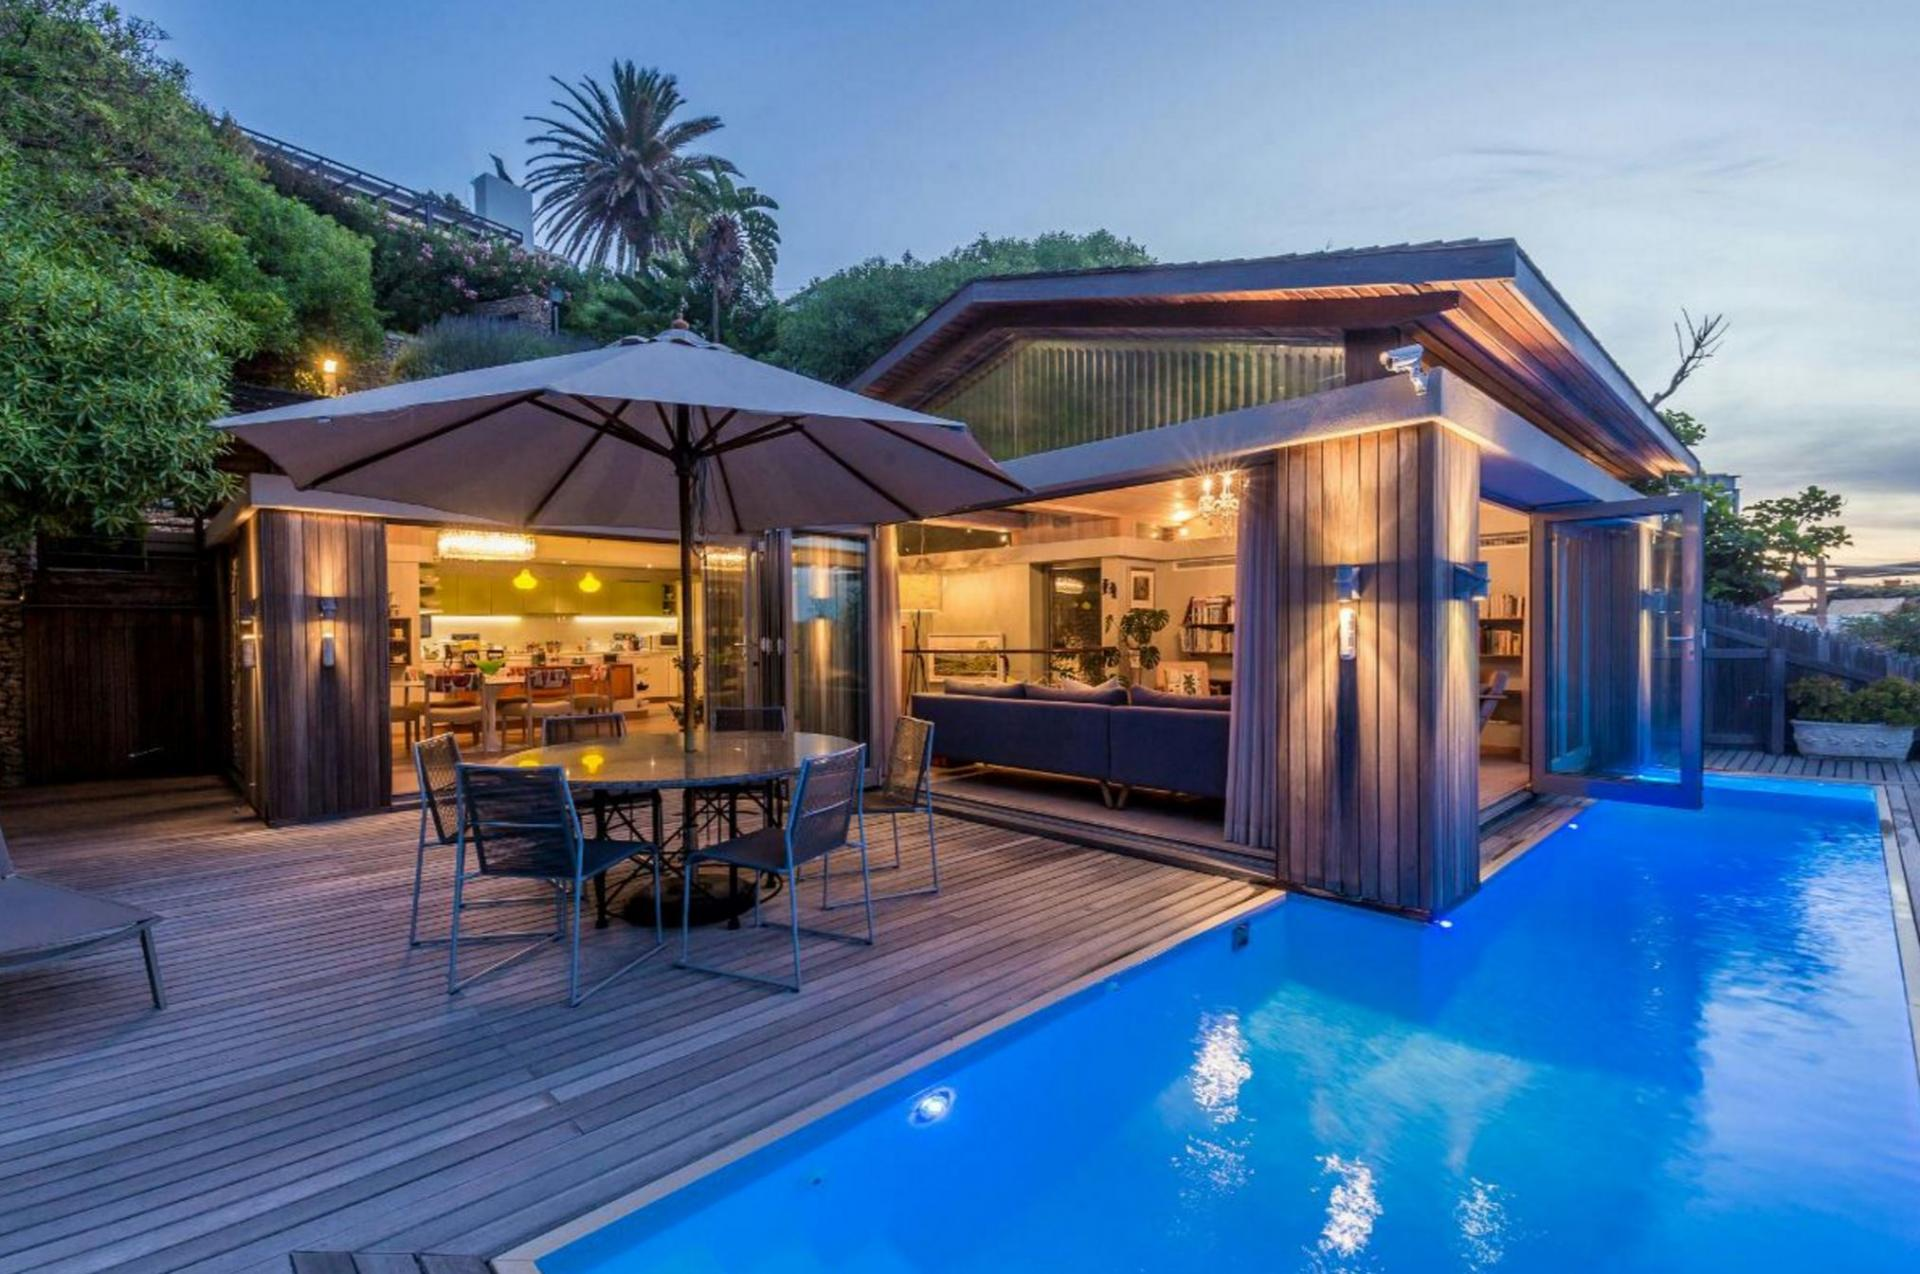 4 Bedroom House For Rent In Cape Town